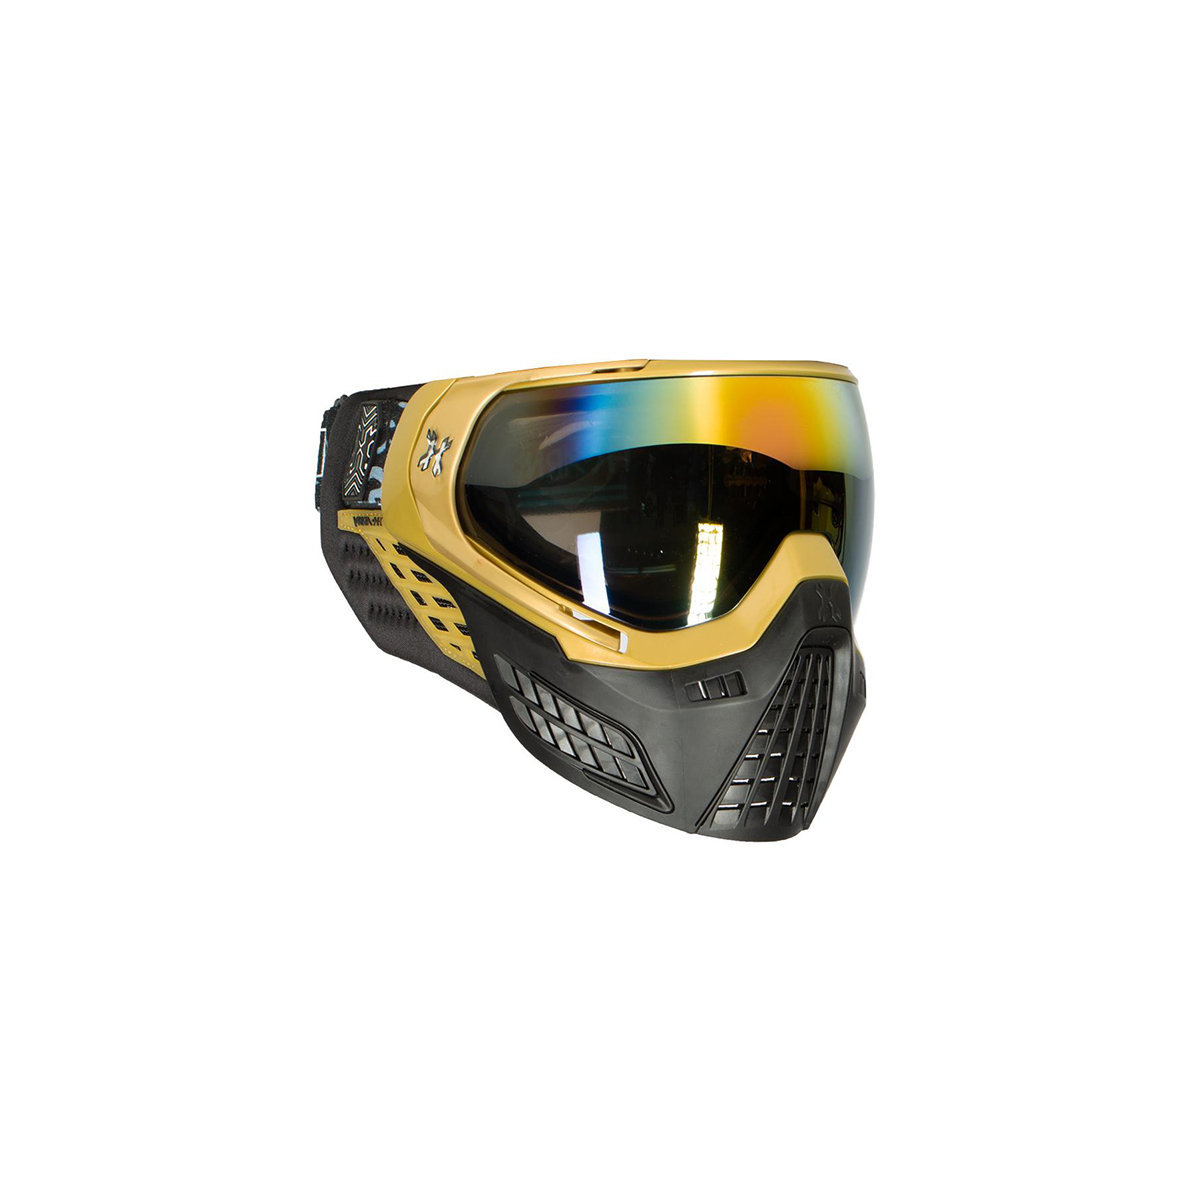 View larger image of HK Army KLR Paintball Goggles